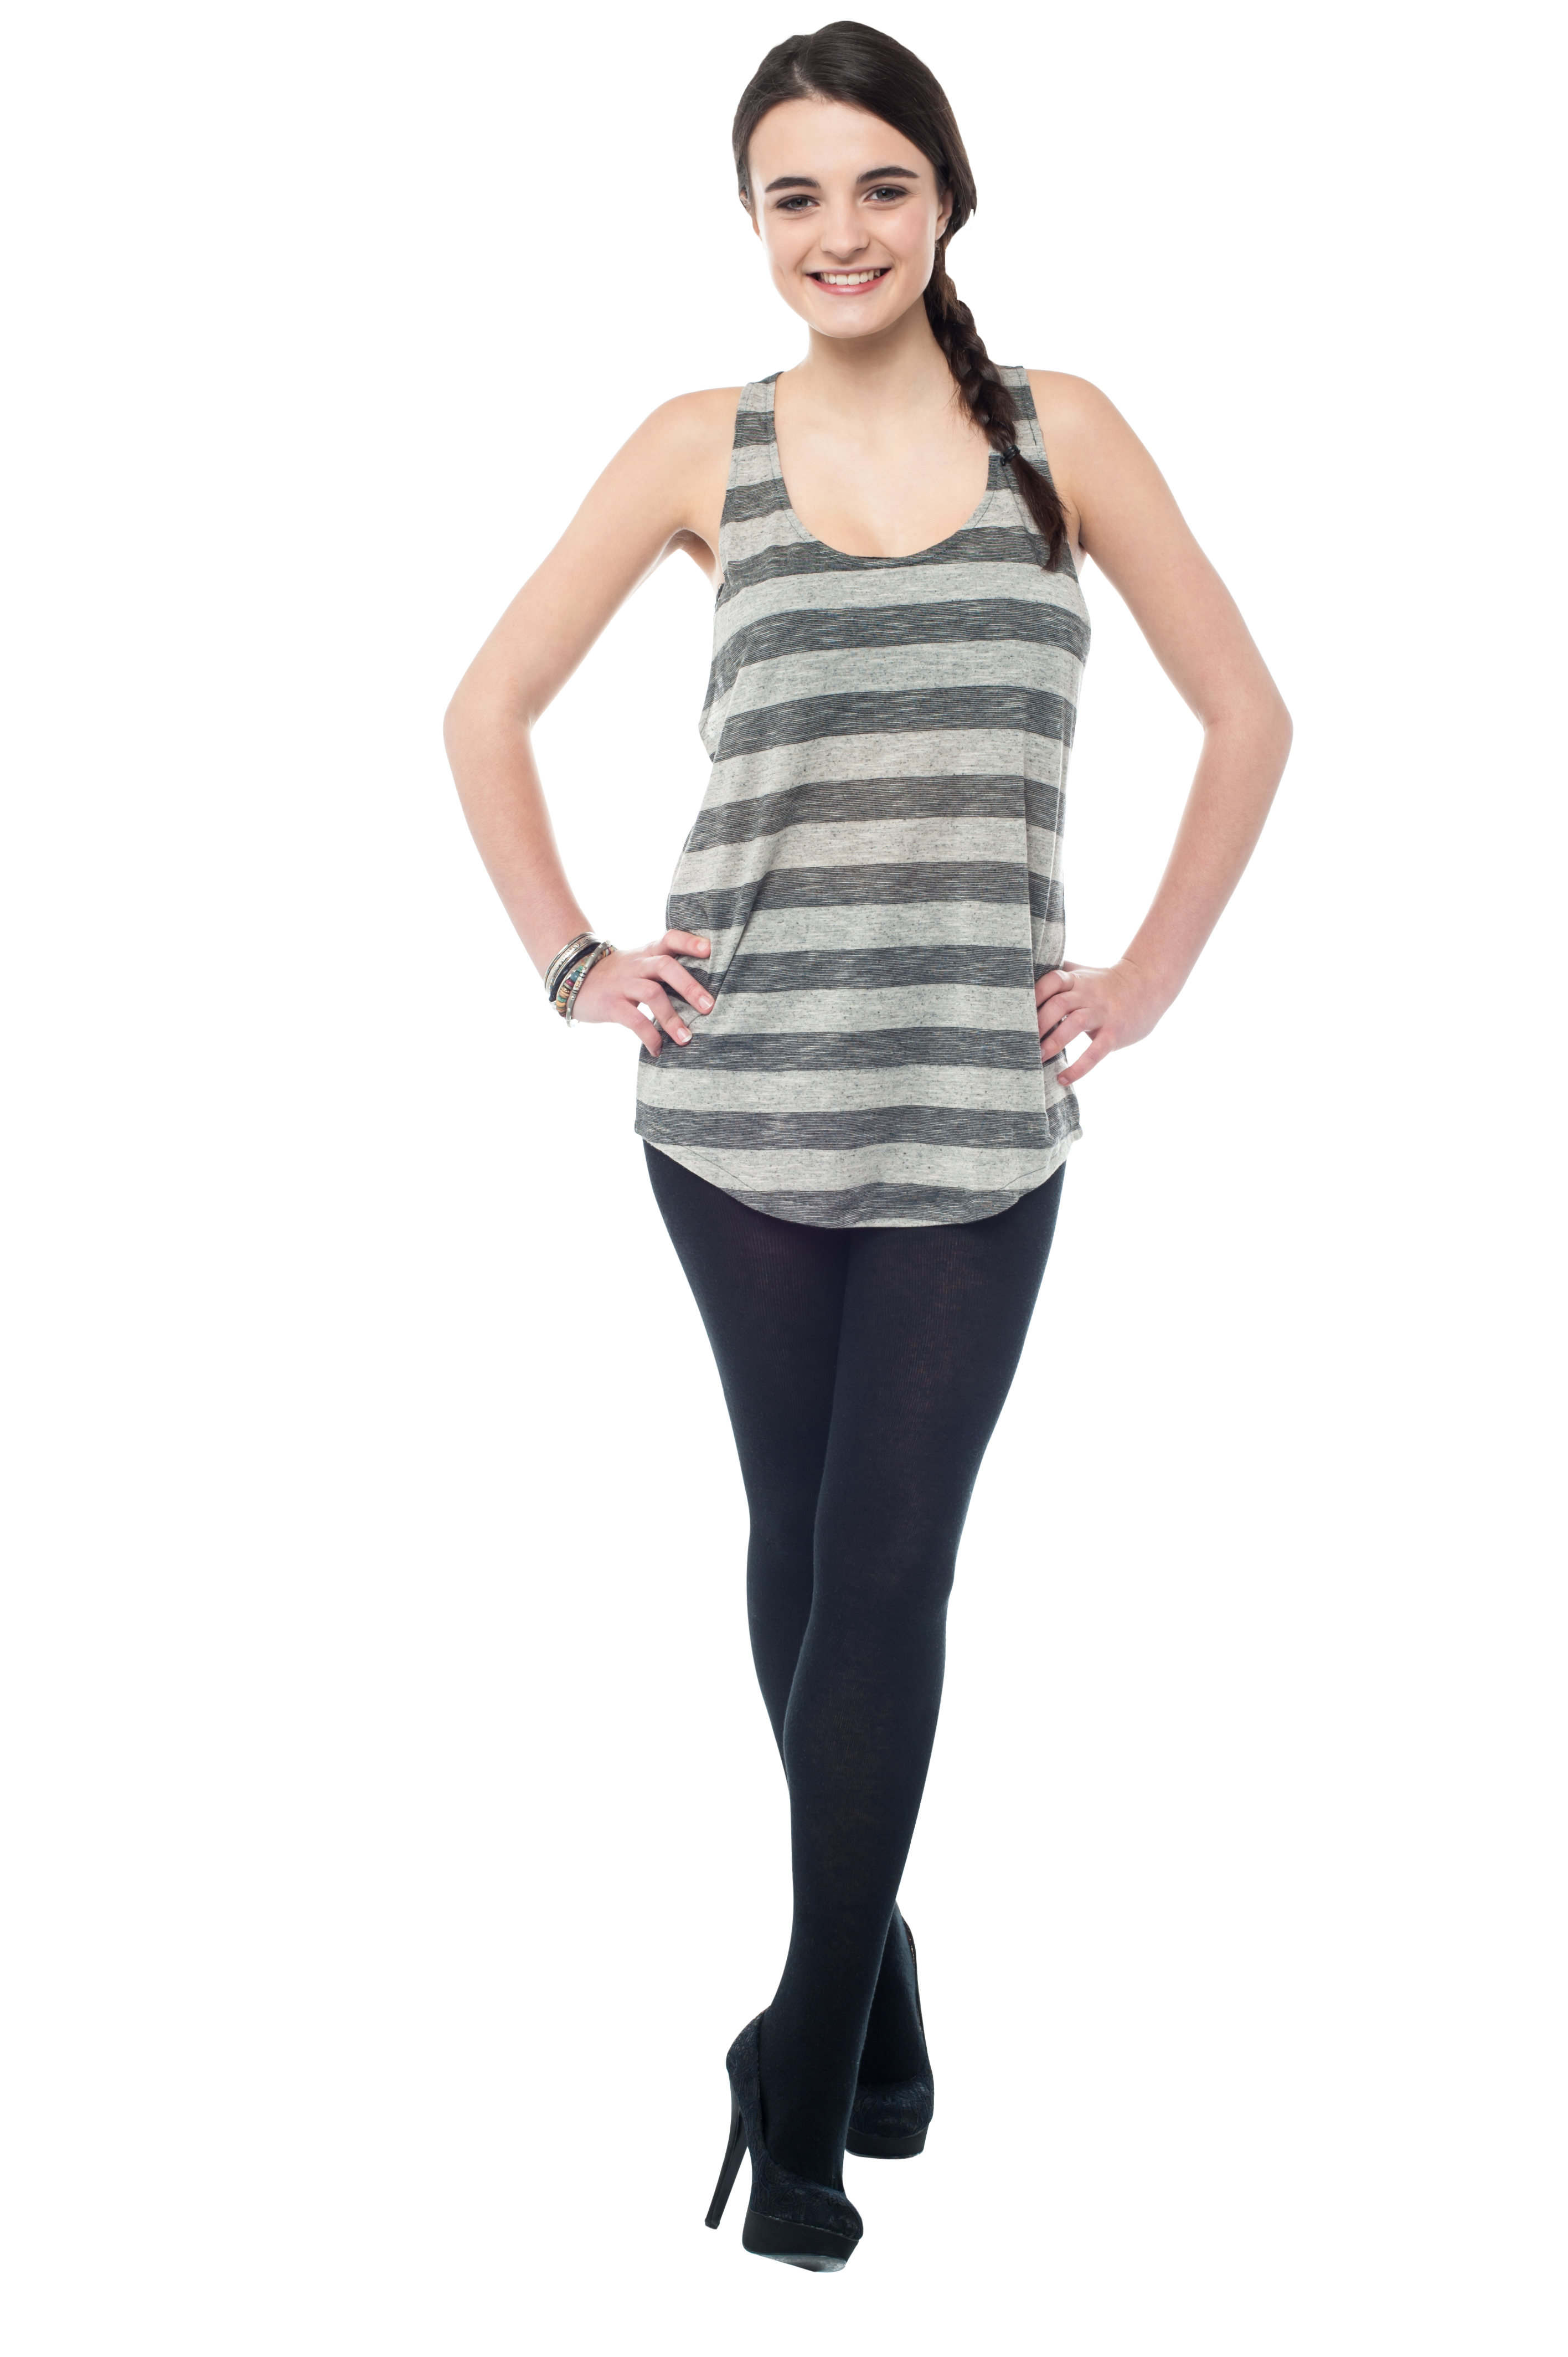 Girl standing png. Cute image purepng free